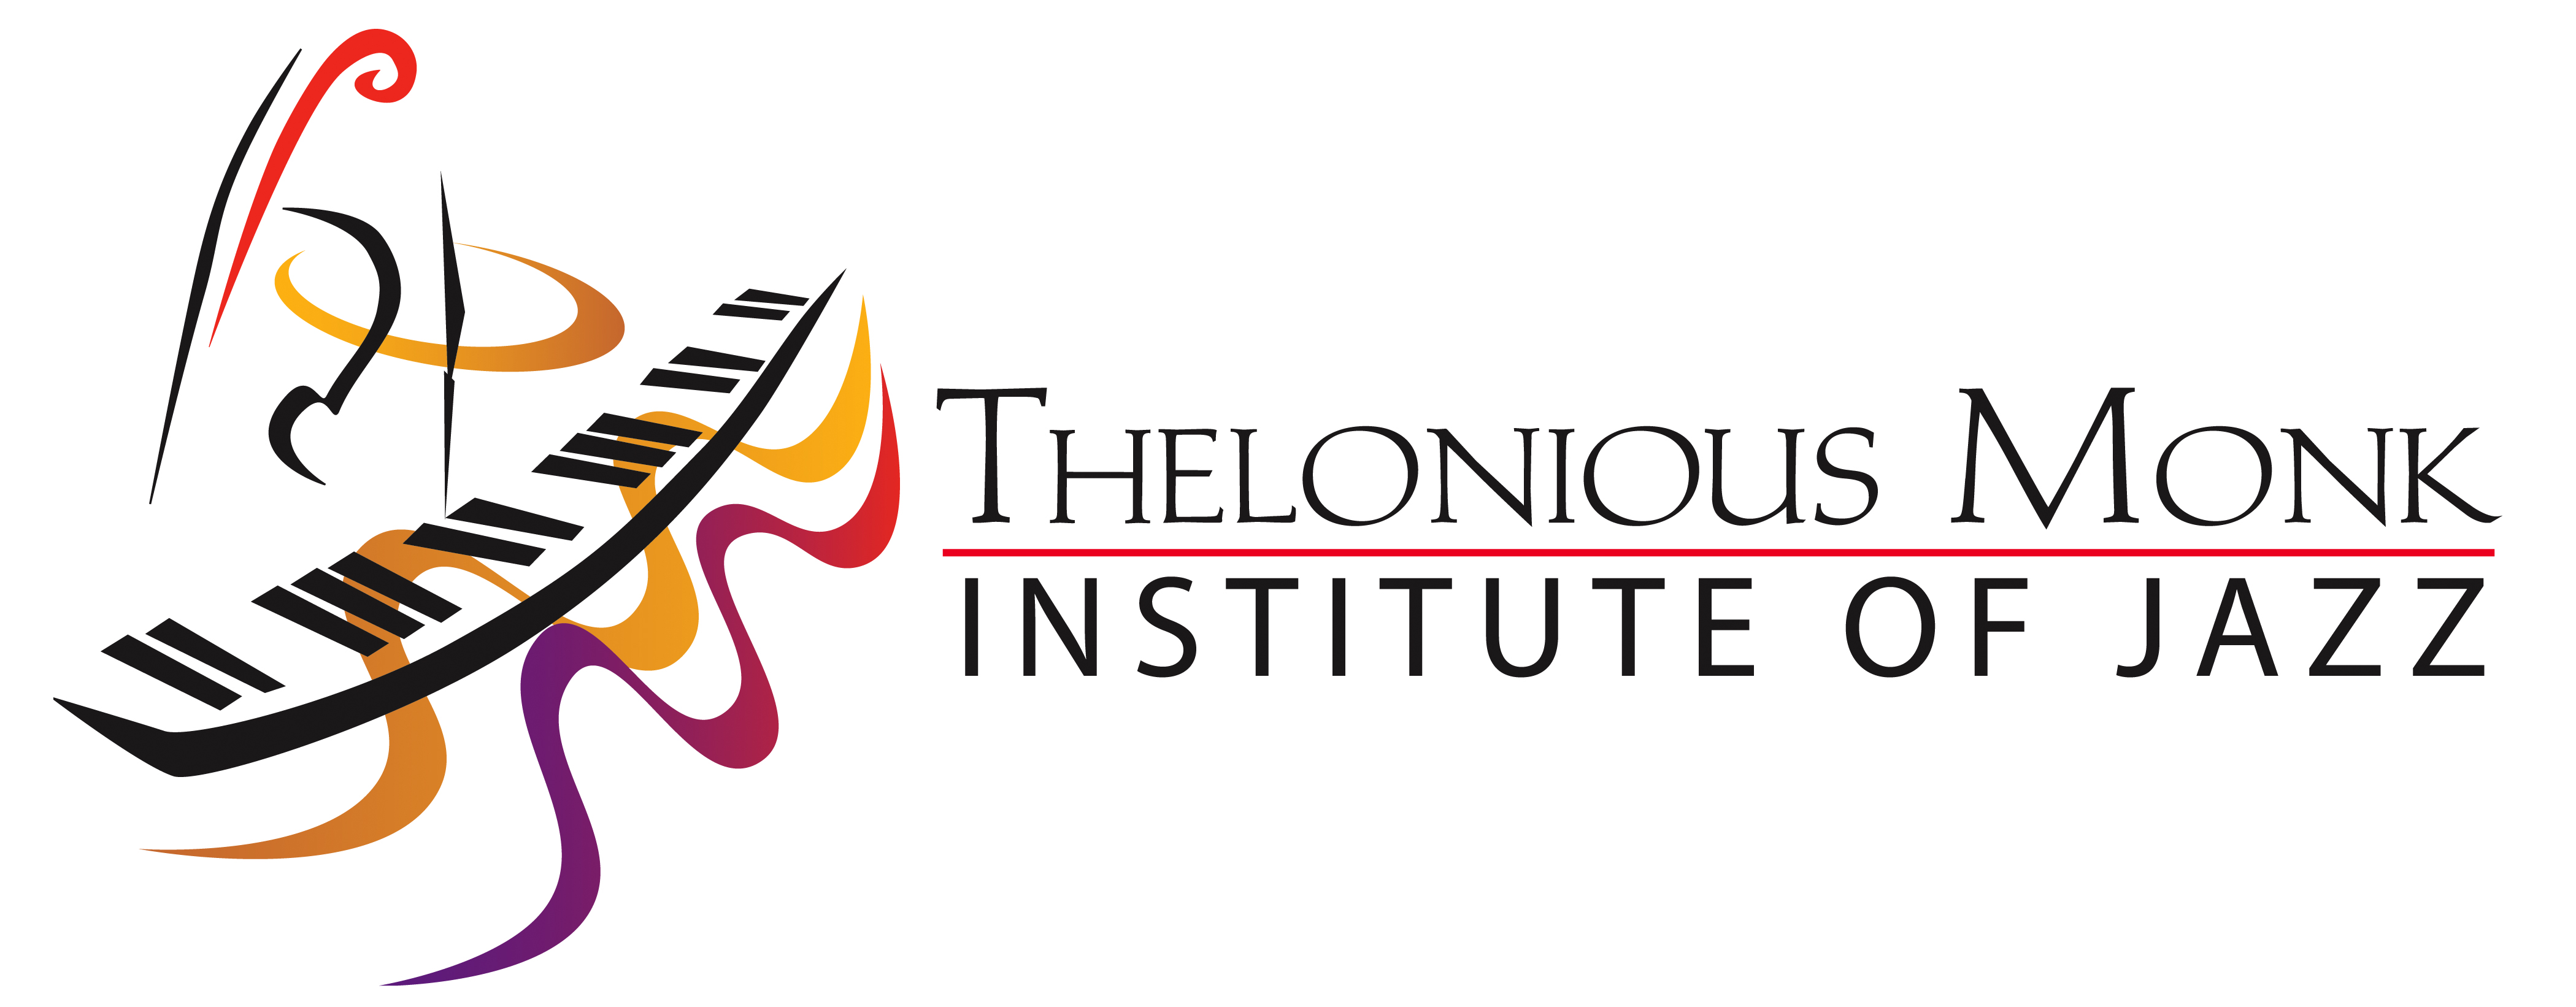 Thelonious Monk Institute of Jazz Performance at the UCLA Herb Alpert School of Music logo